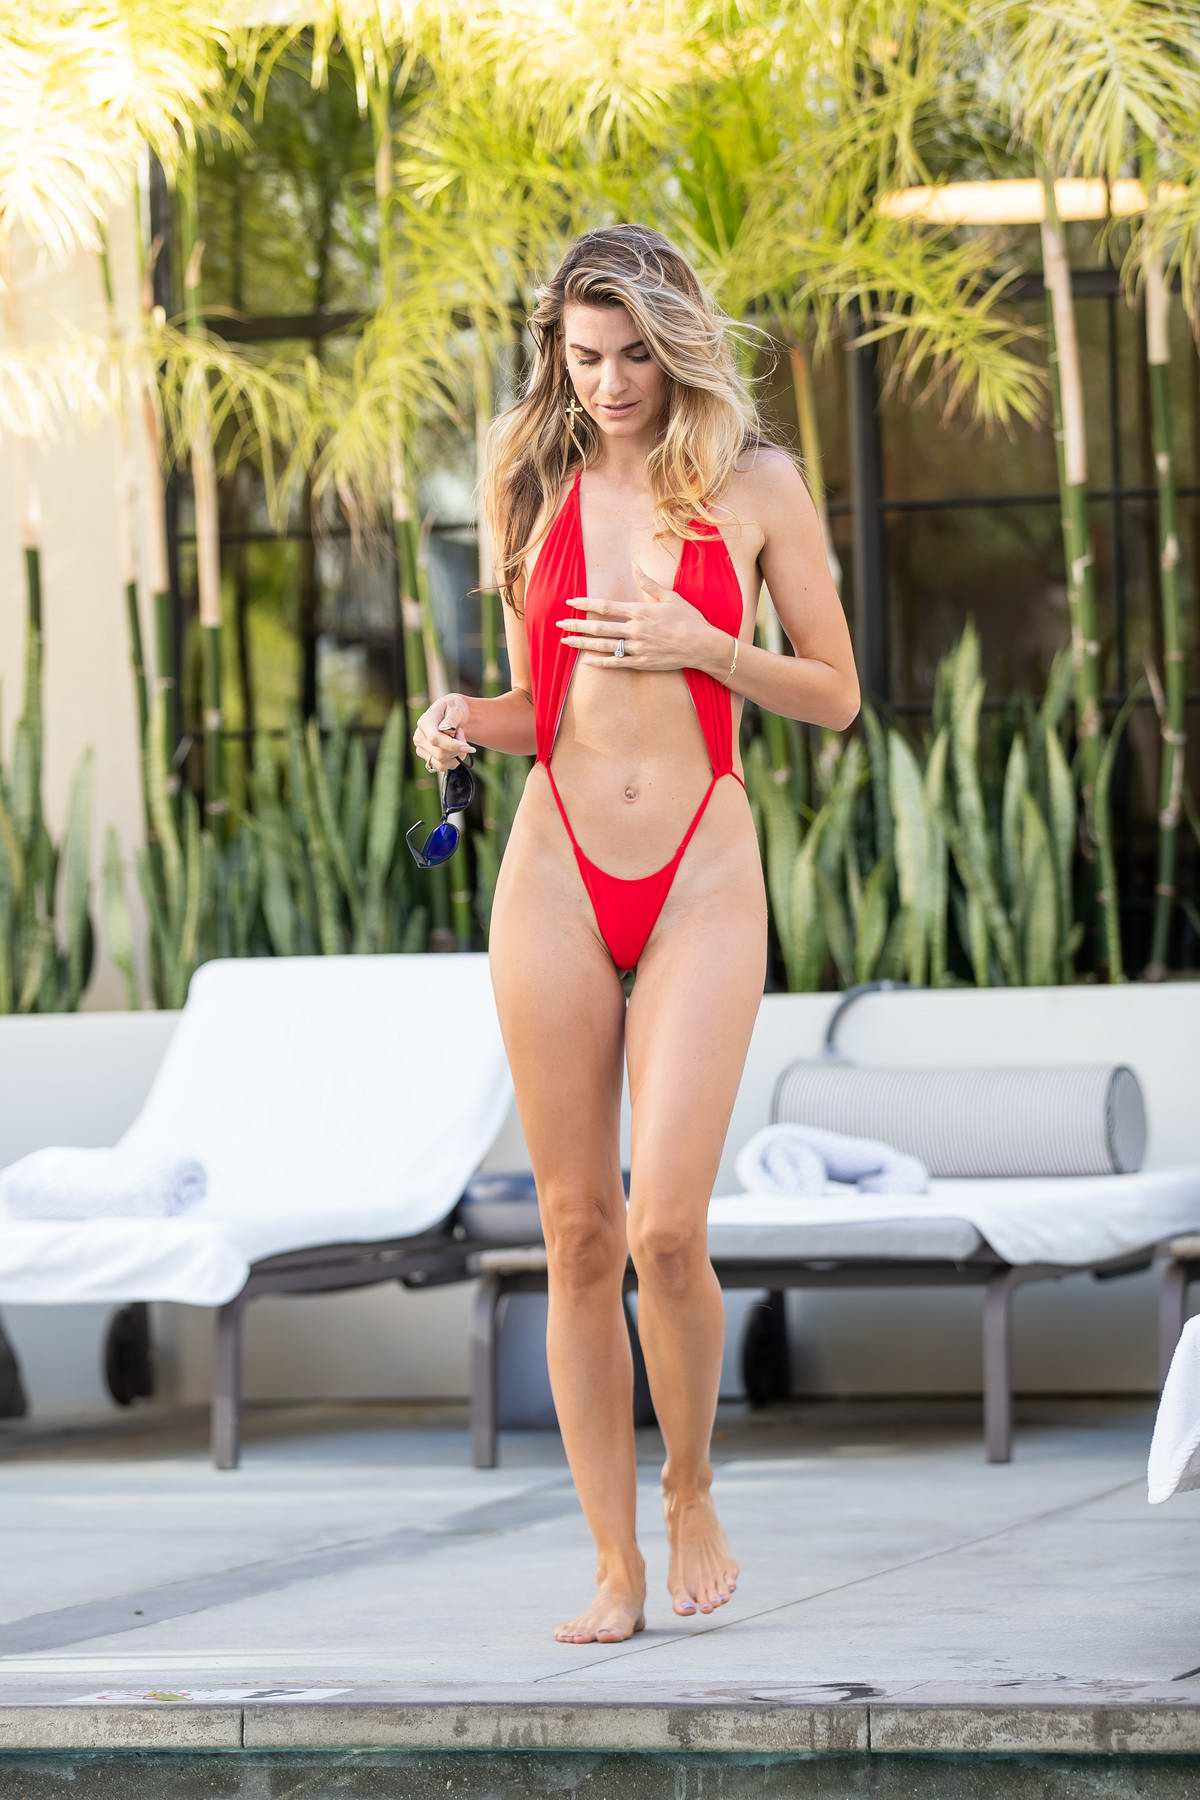 Rachel McCord sizzles in a red bikini while lounging by the pool with Christy Powers and Rick Schirmer at La Peer Hotel in West Hollywood, Los Angeles